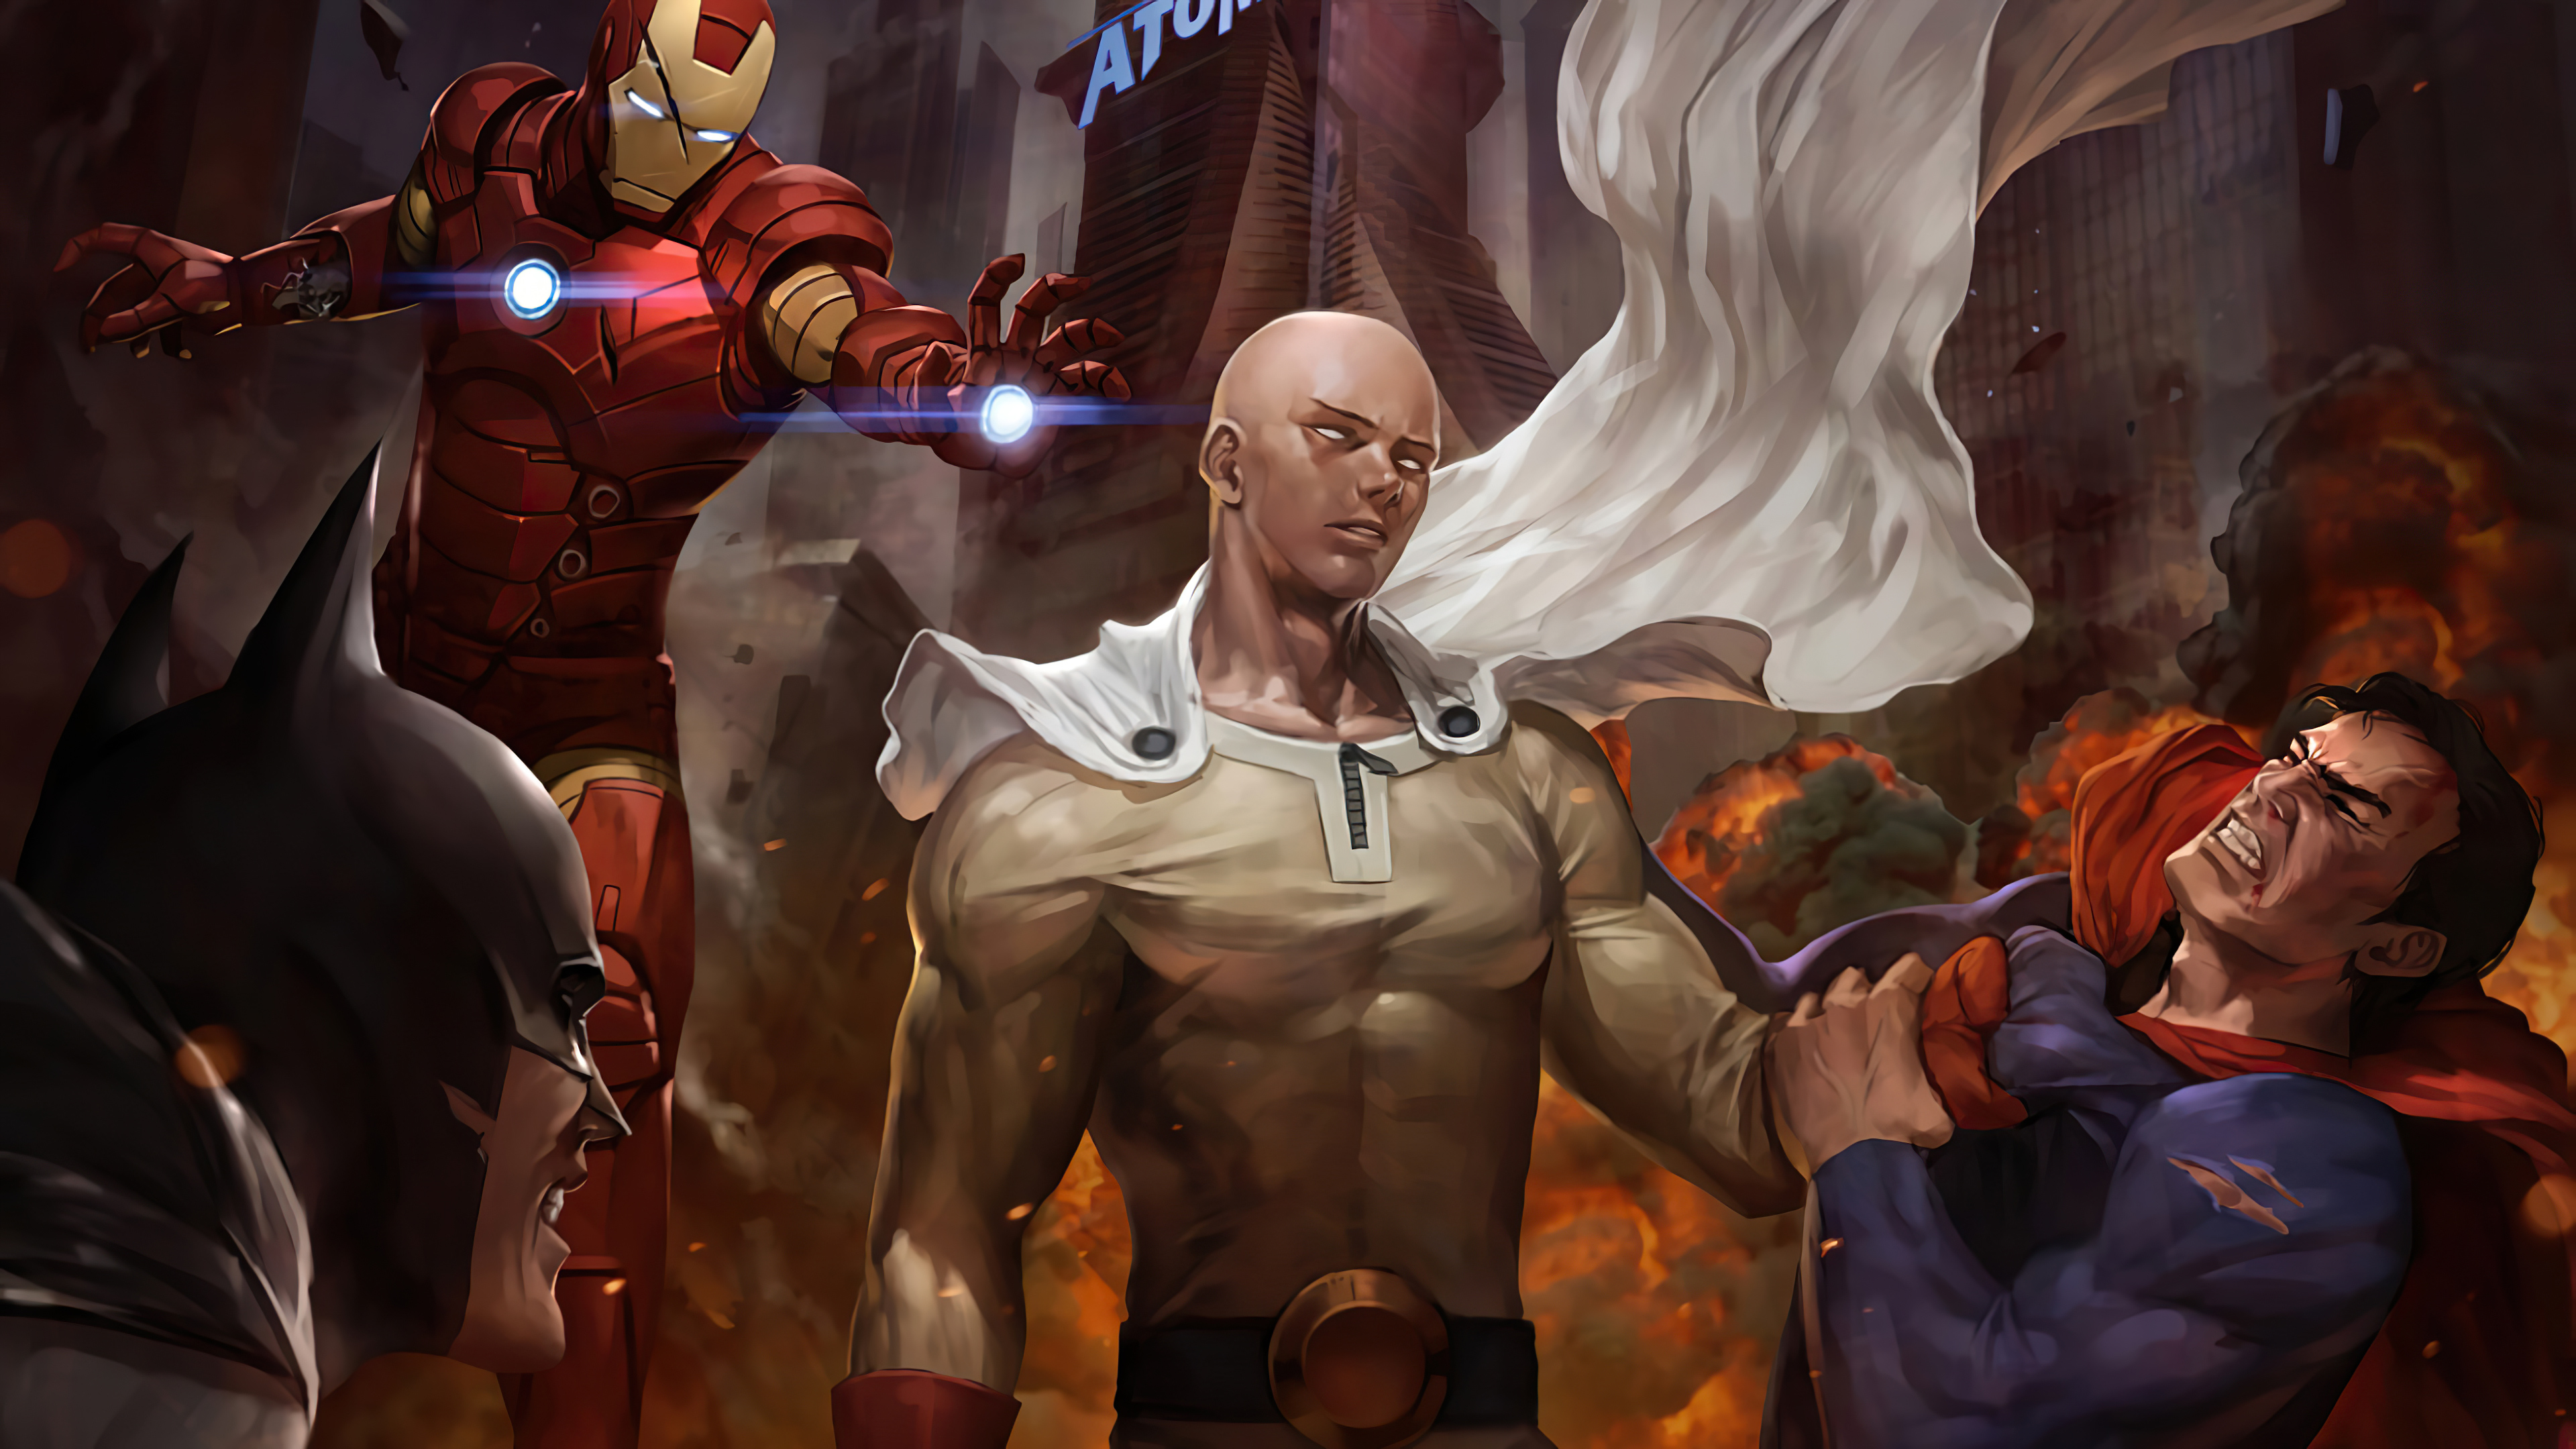 One Punch Man Vs Superman 4k Hd Superheroes 4k Wallpapers Images Backgrounds Photos And Pictures